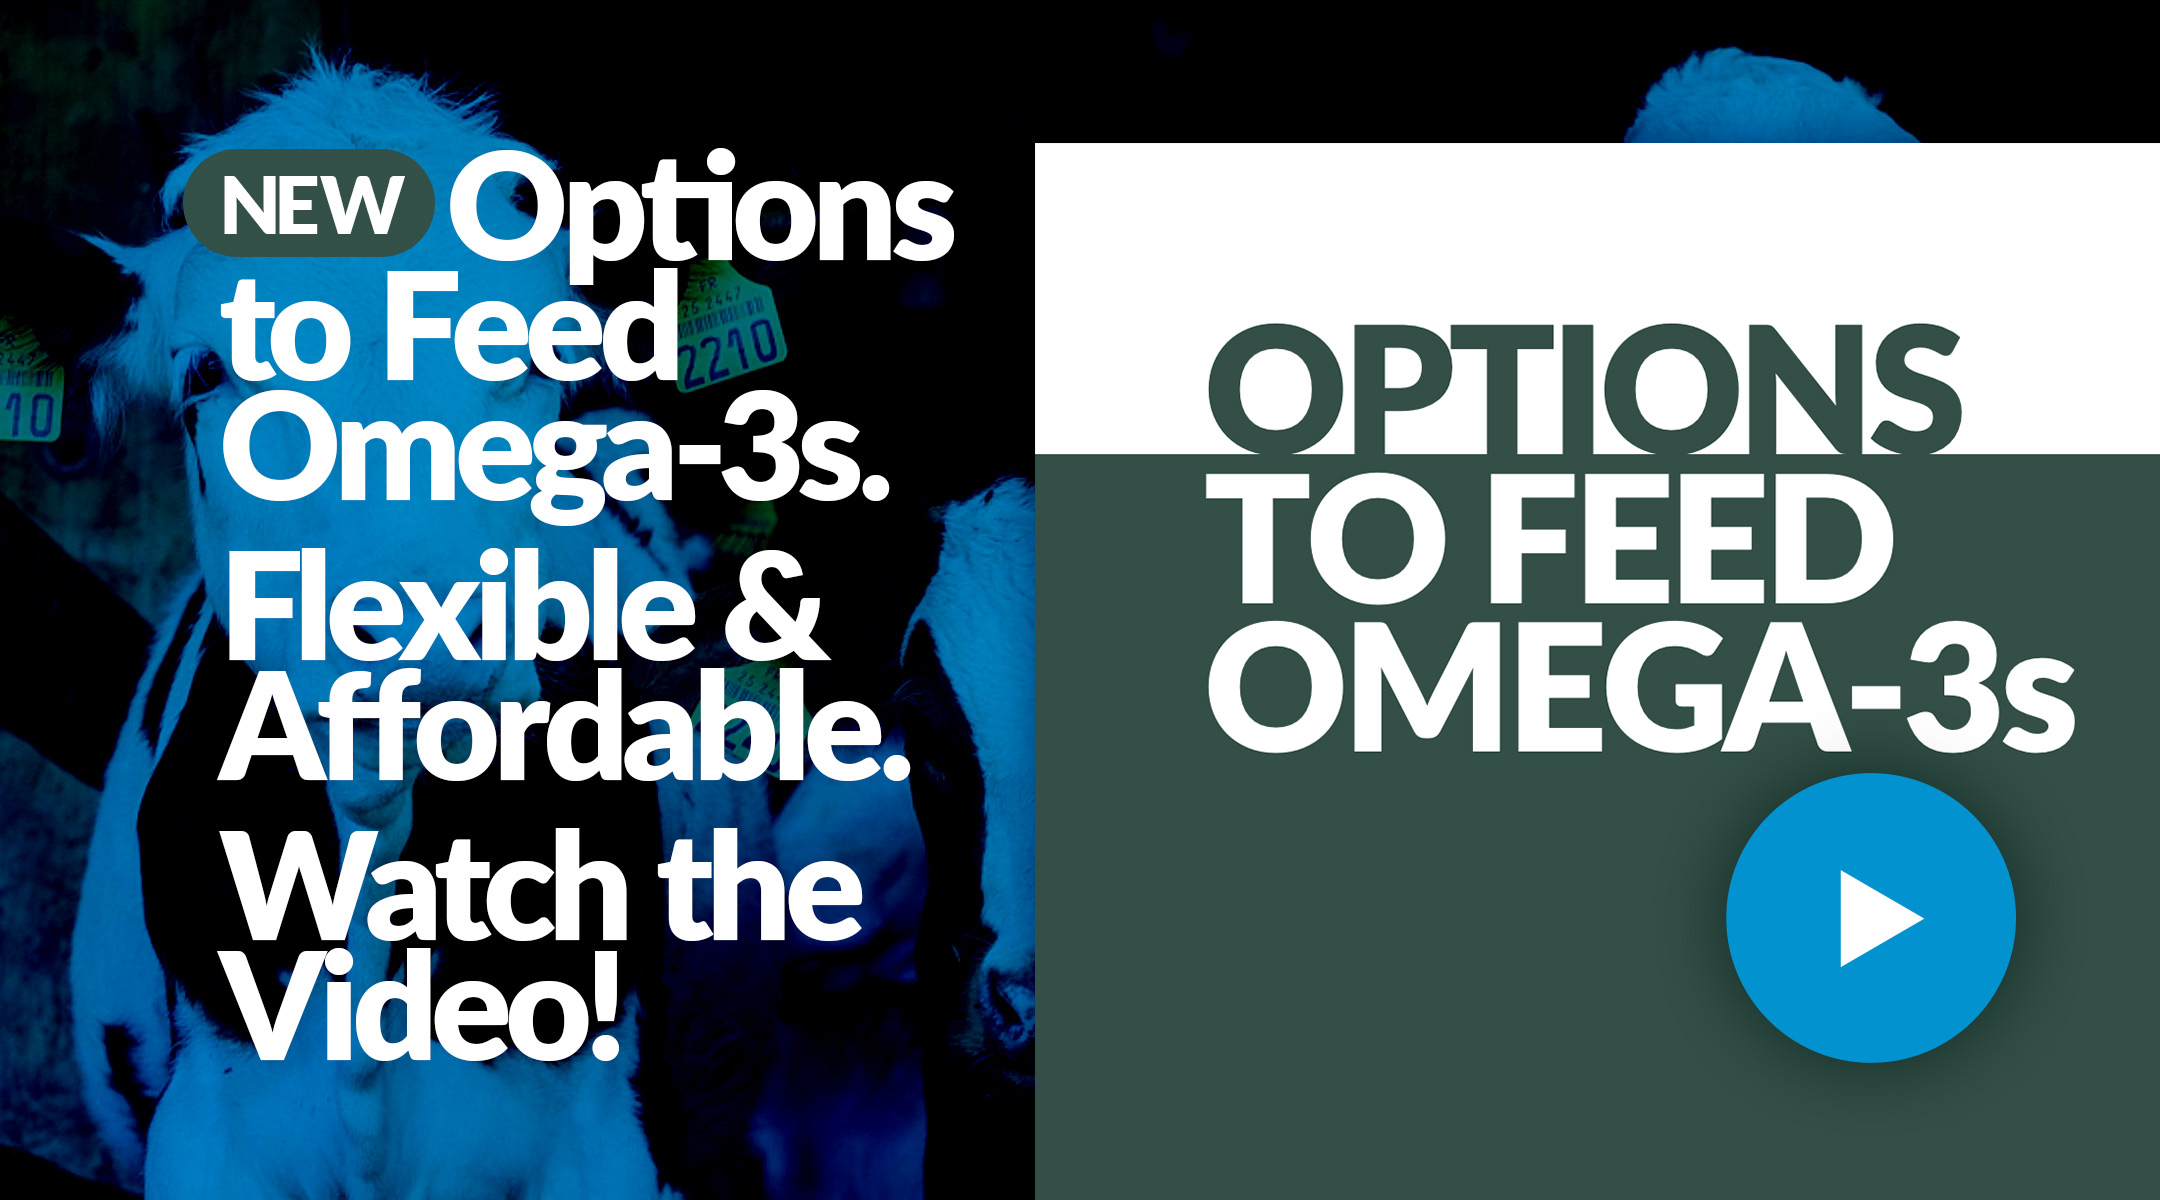 Options to Feed Omega-3s